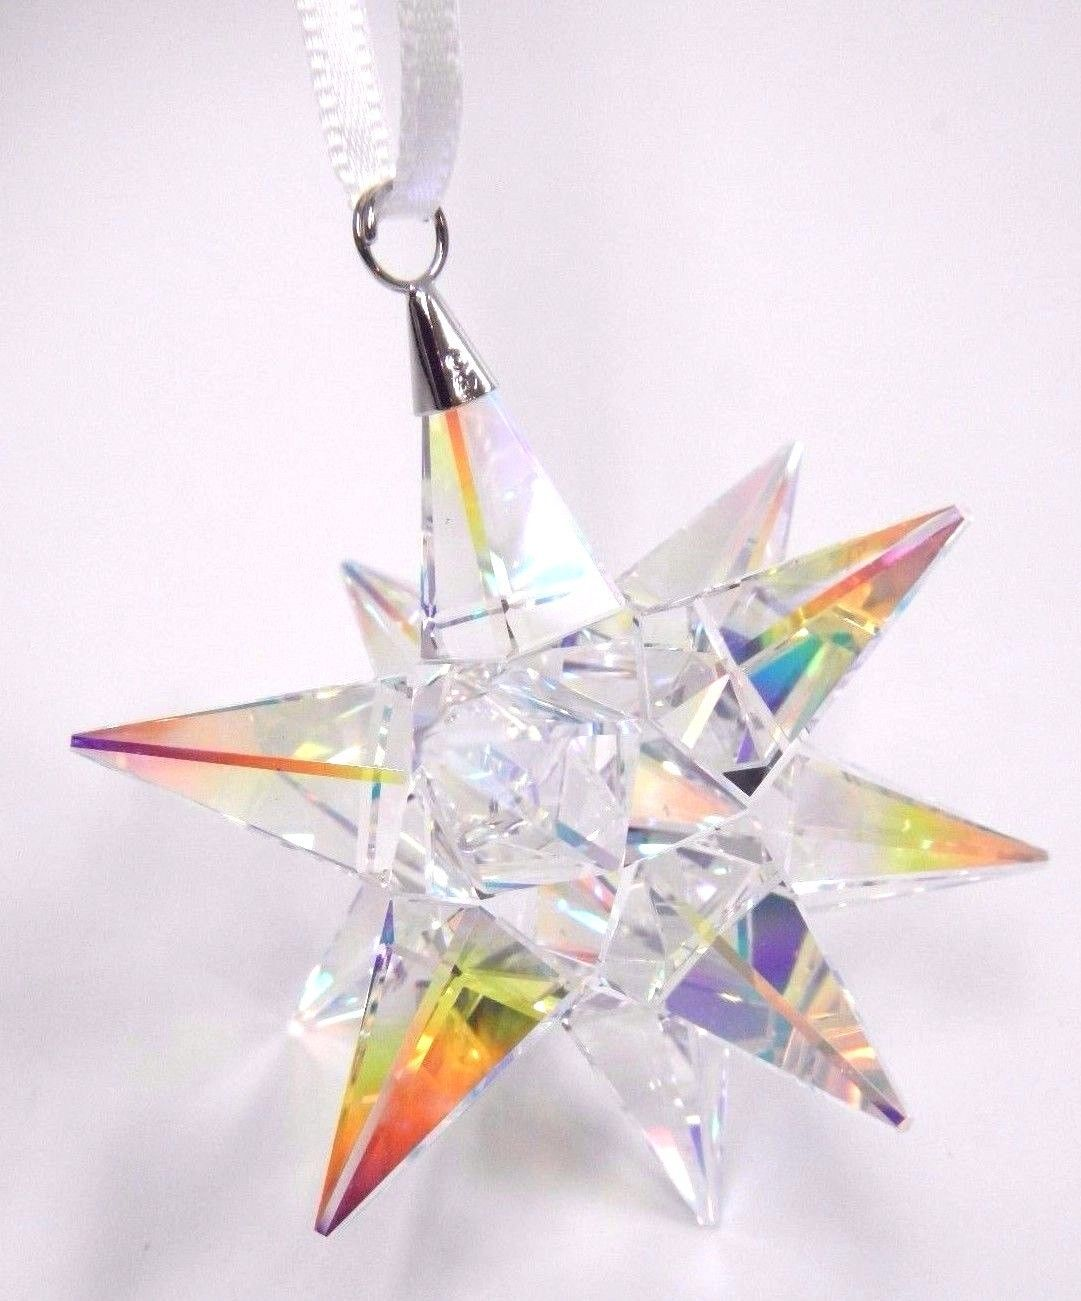 794b4a42ca1 STAR ORNAMENT, AURORA BOREALIS CRYSTAL This stunning star ornament will add  a captivating, iridescent sparkle to your holiday décor. It is coated wit.